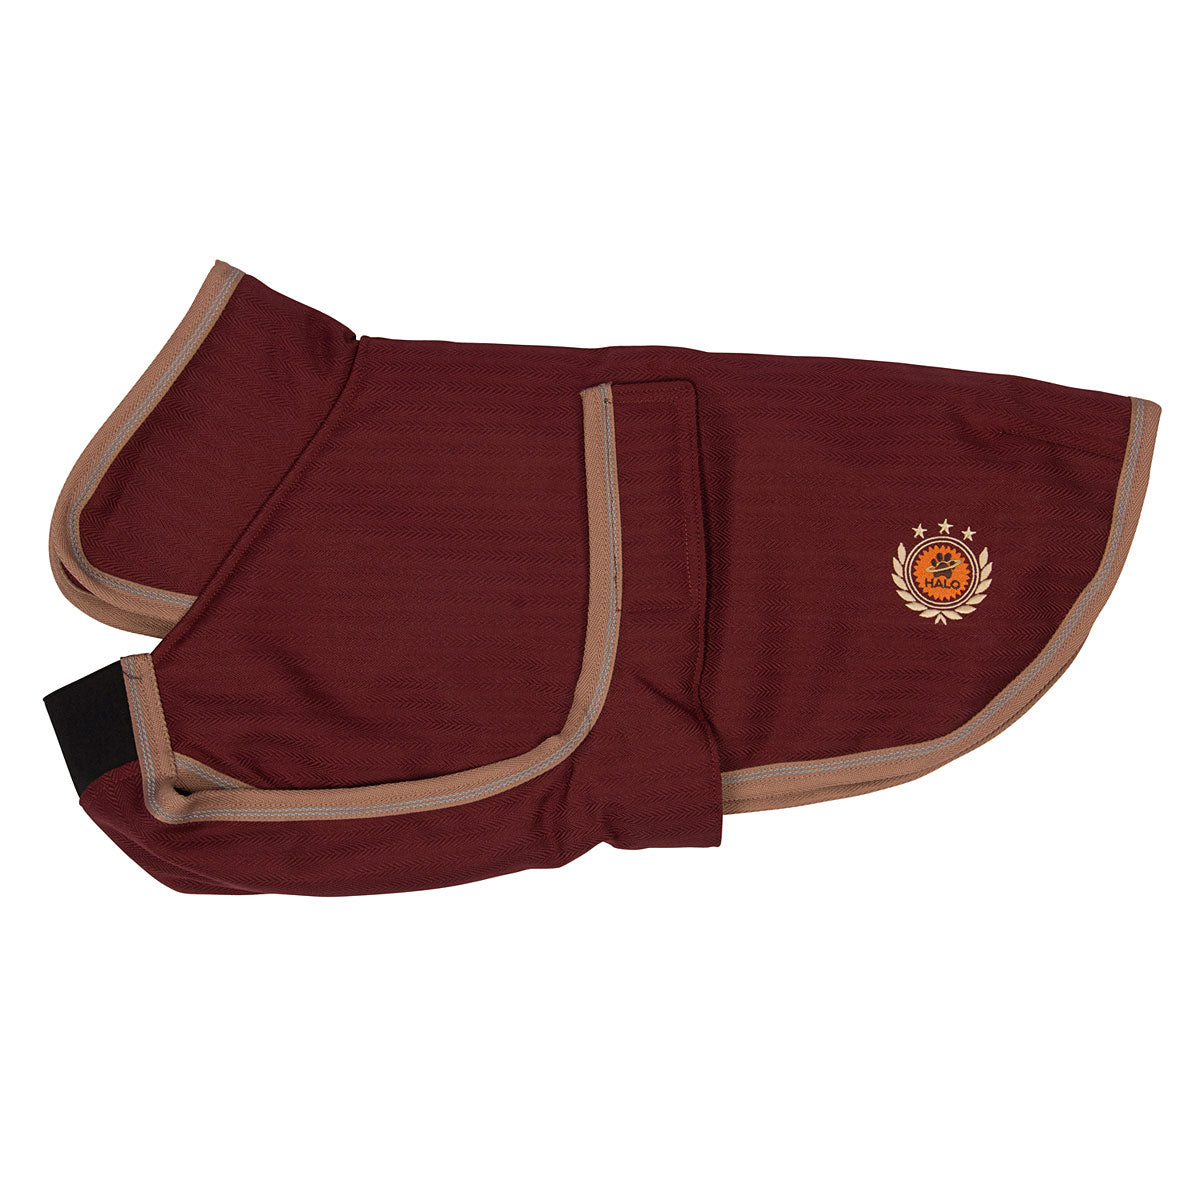 Halo Optima Dog Coat with Collar_1